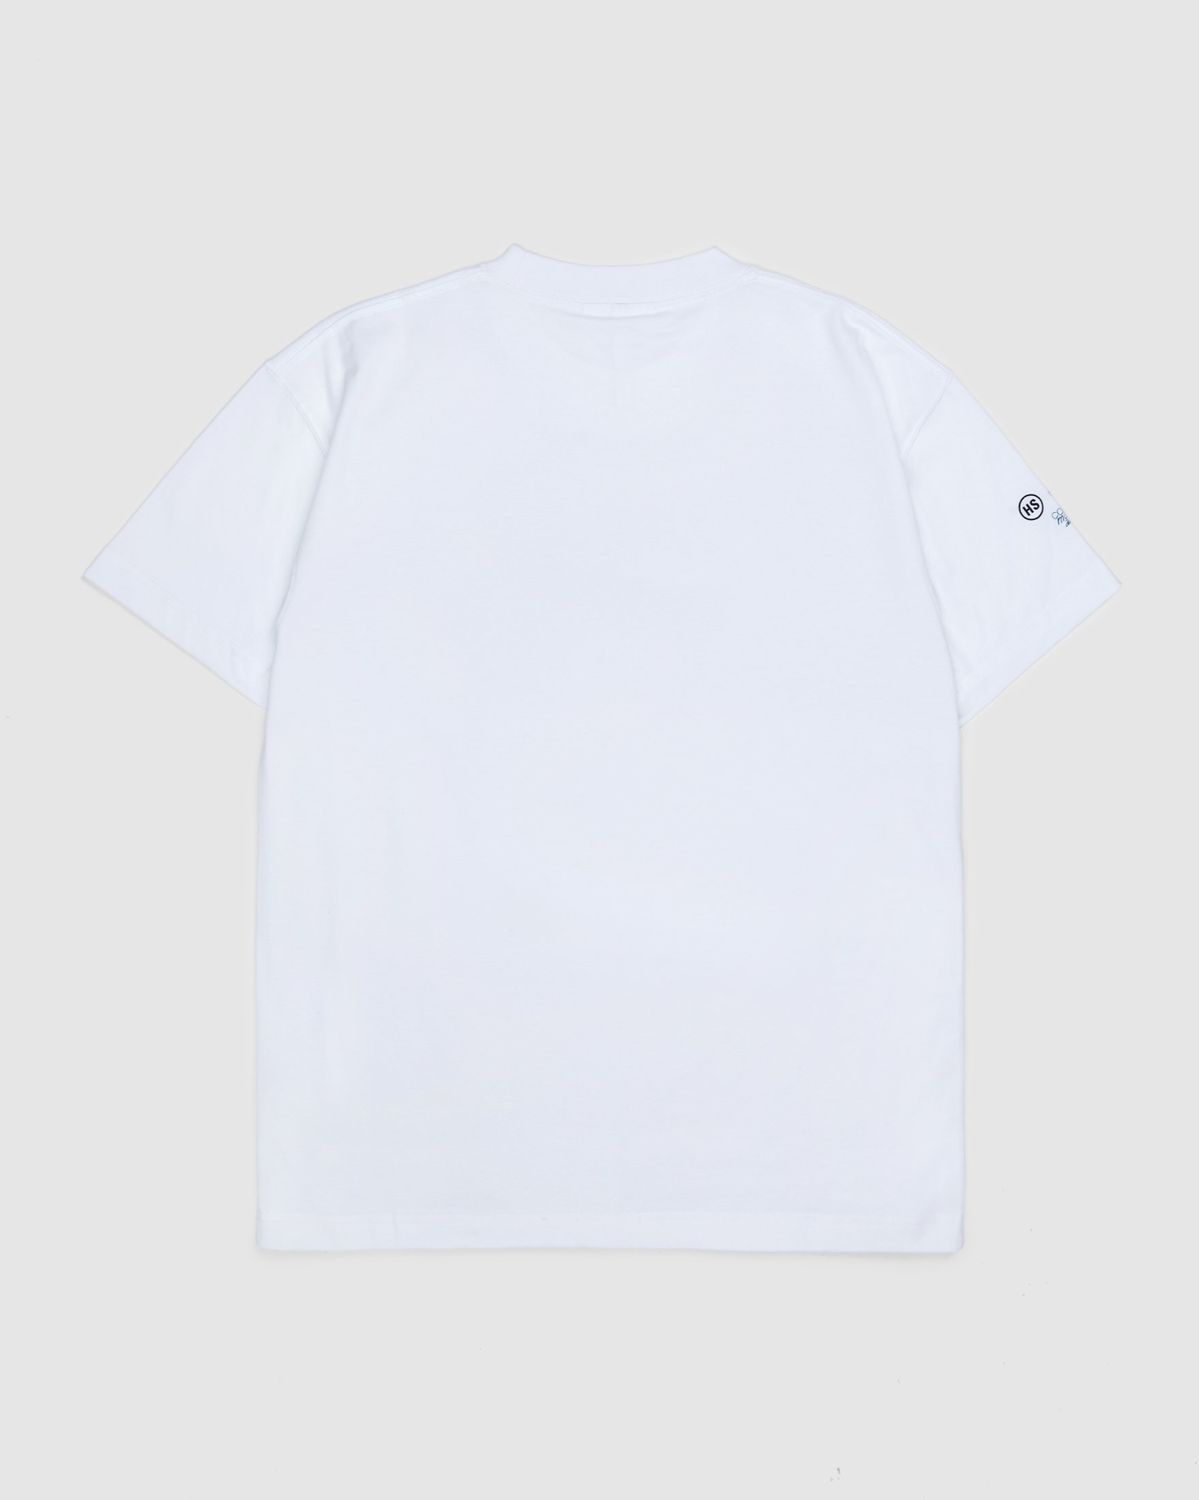 Colette Mon Amour x Soulland -  Snoopy Bed White T-Shirt - Image 2